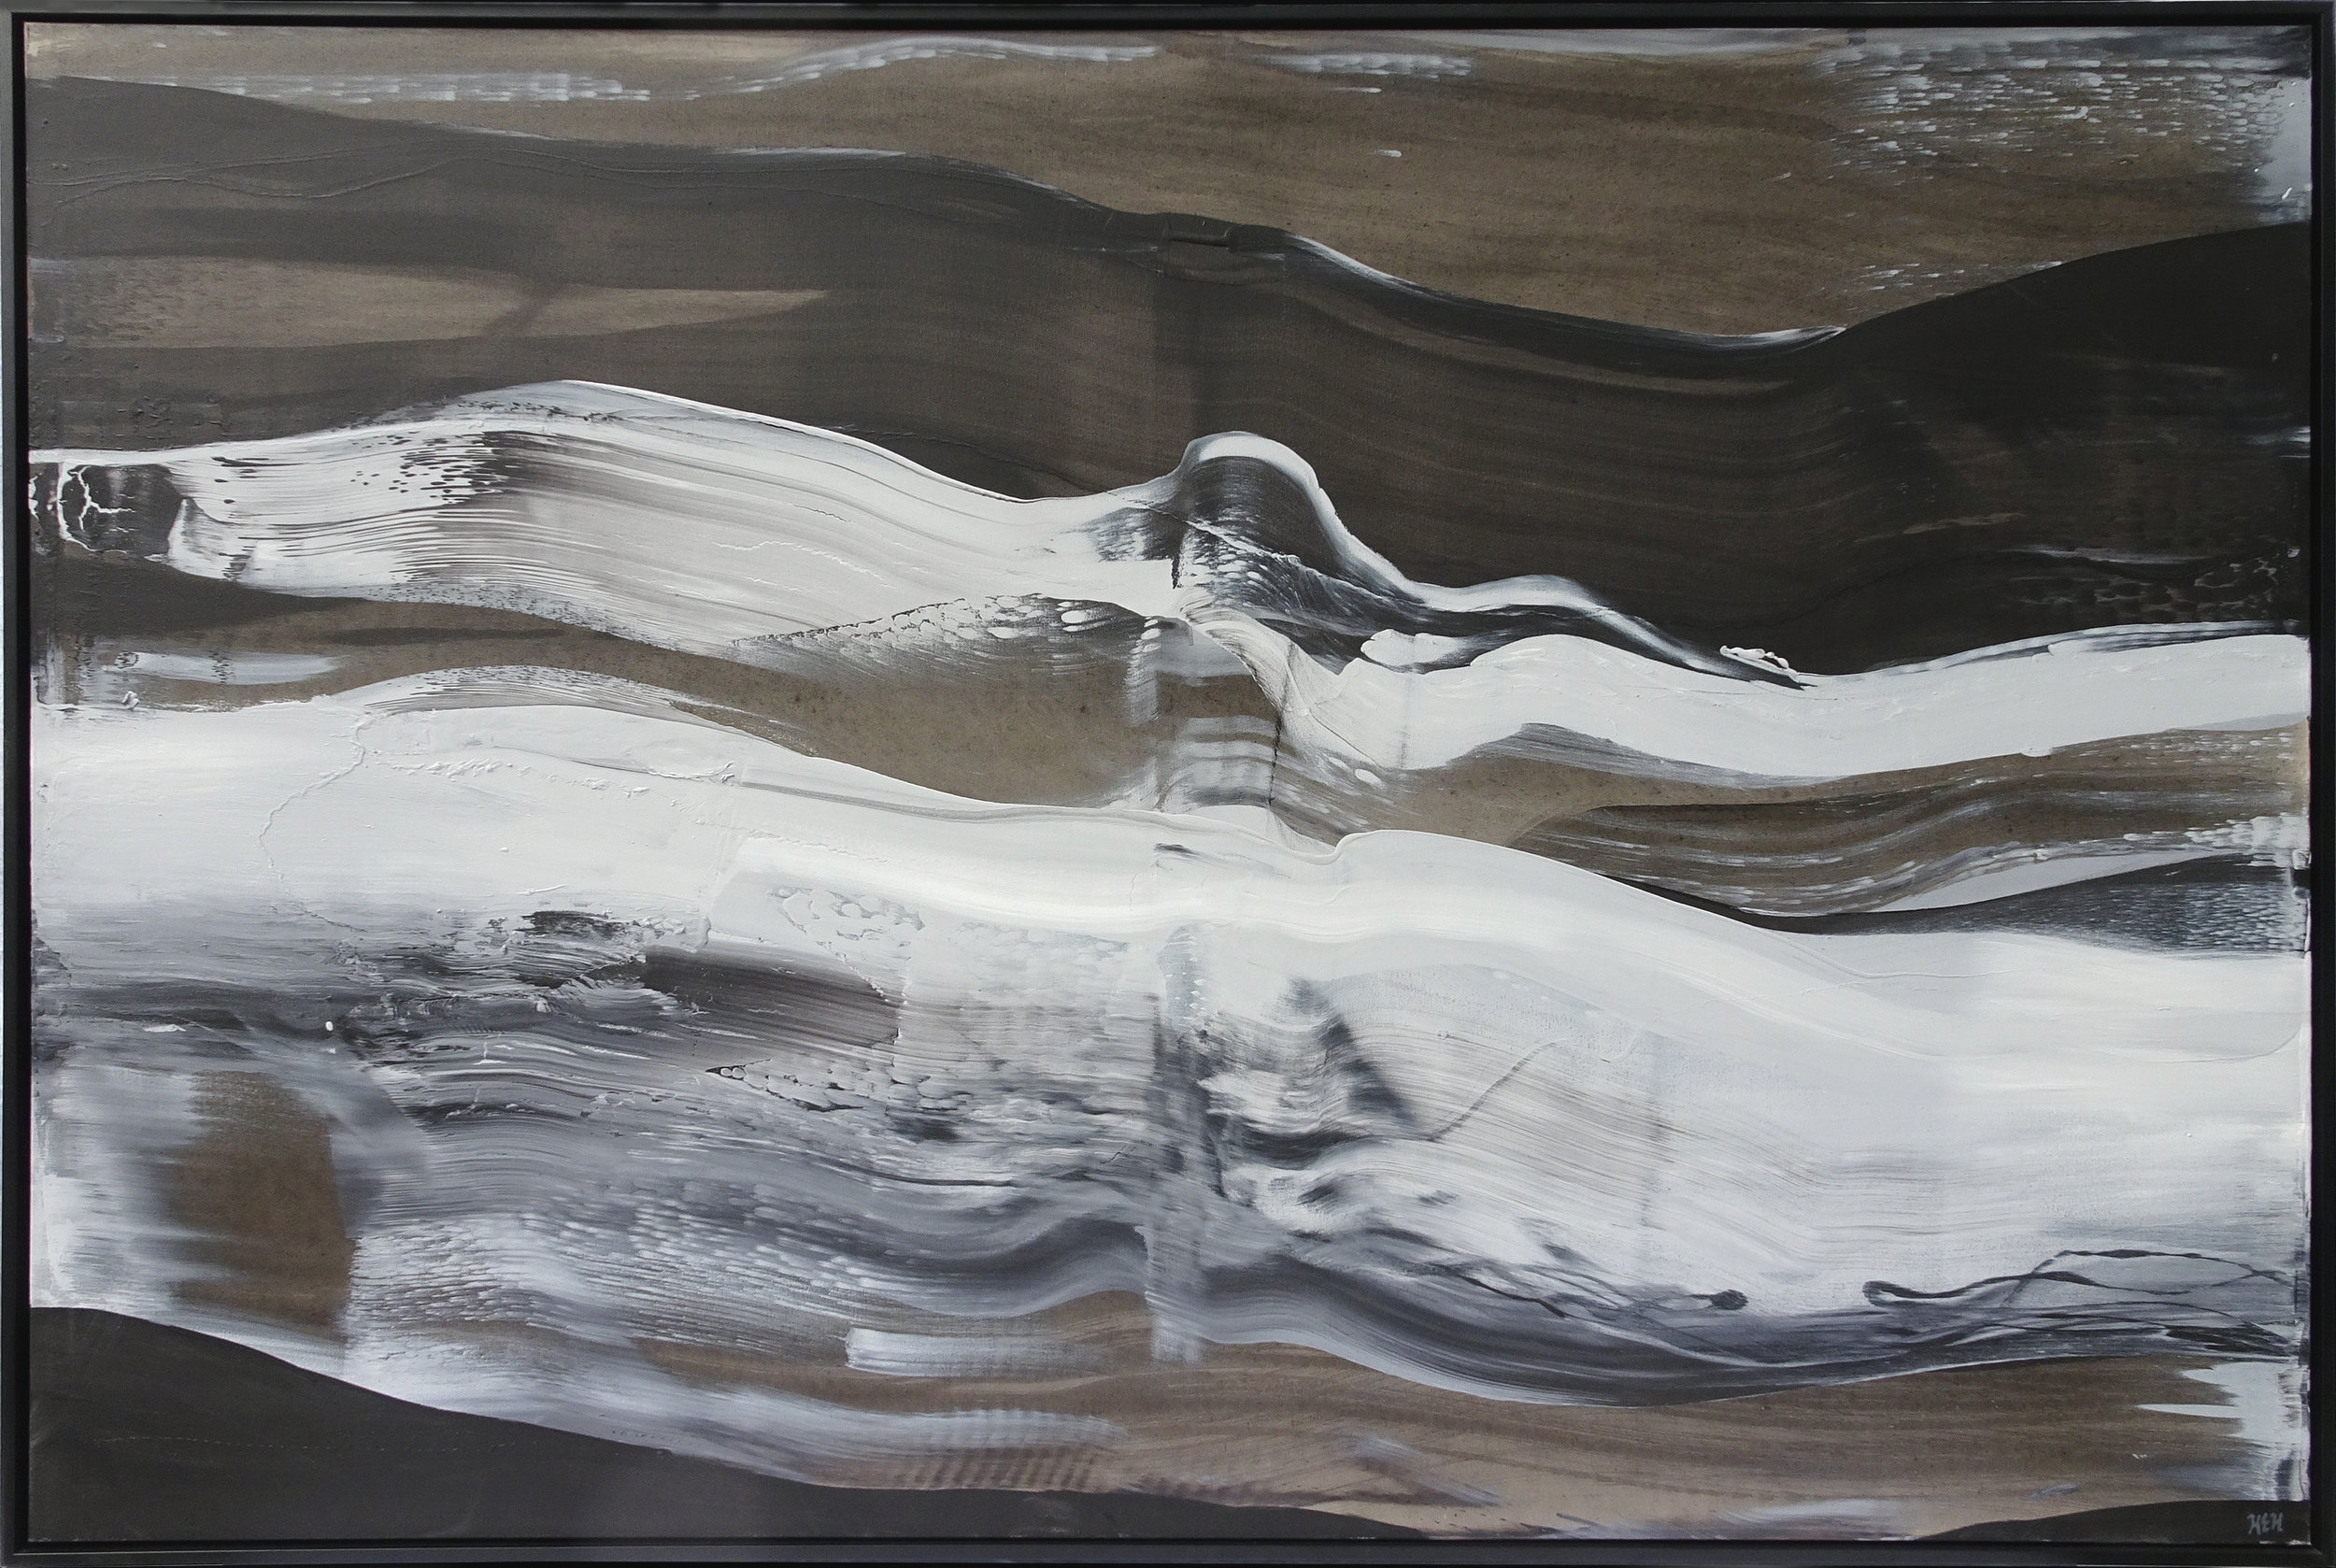 """""""Energy Five"""", 48 in x 72 in, Acrylic on Canvas, Framed in Black Floater Frame, 2018."""